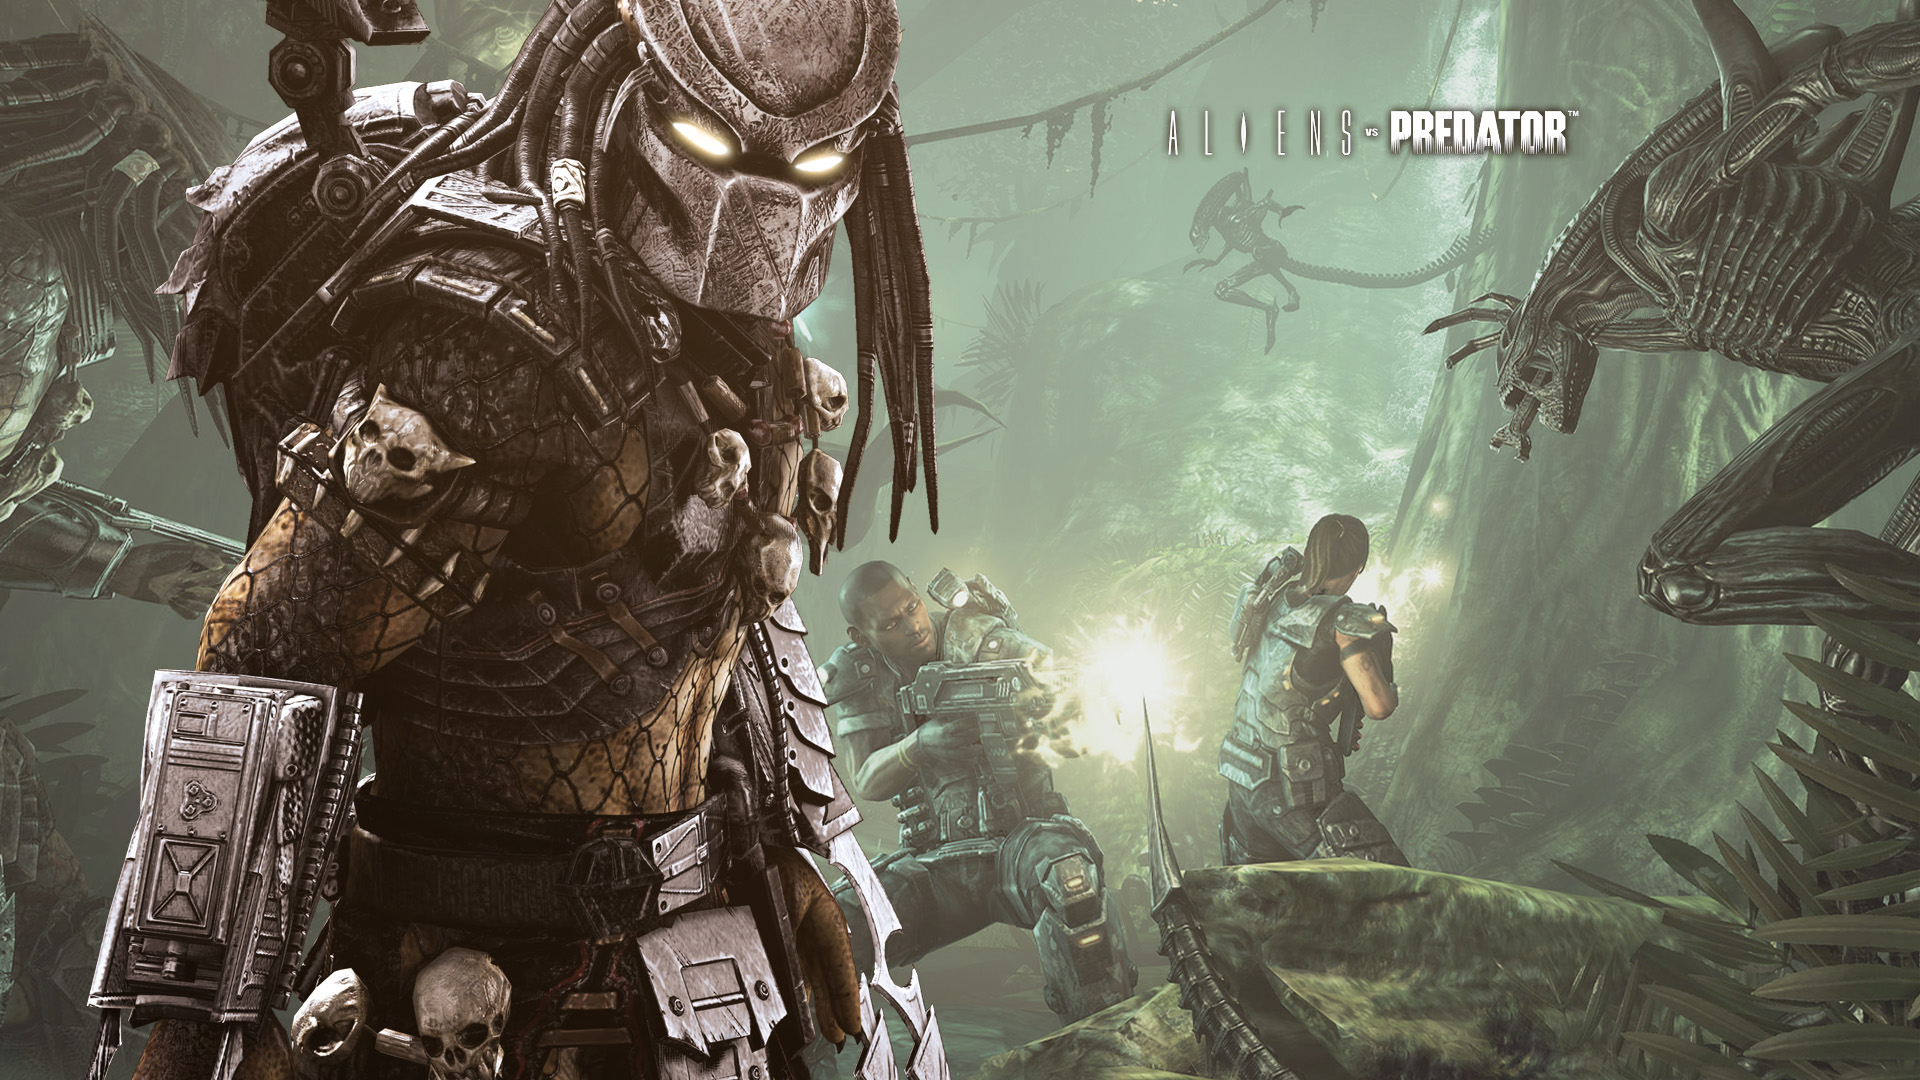 Predator Vs Alien Wallpaper